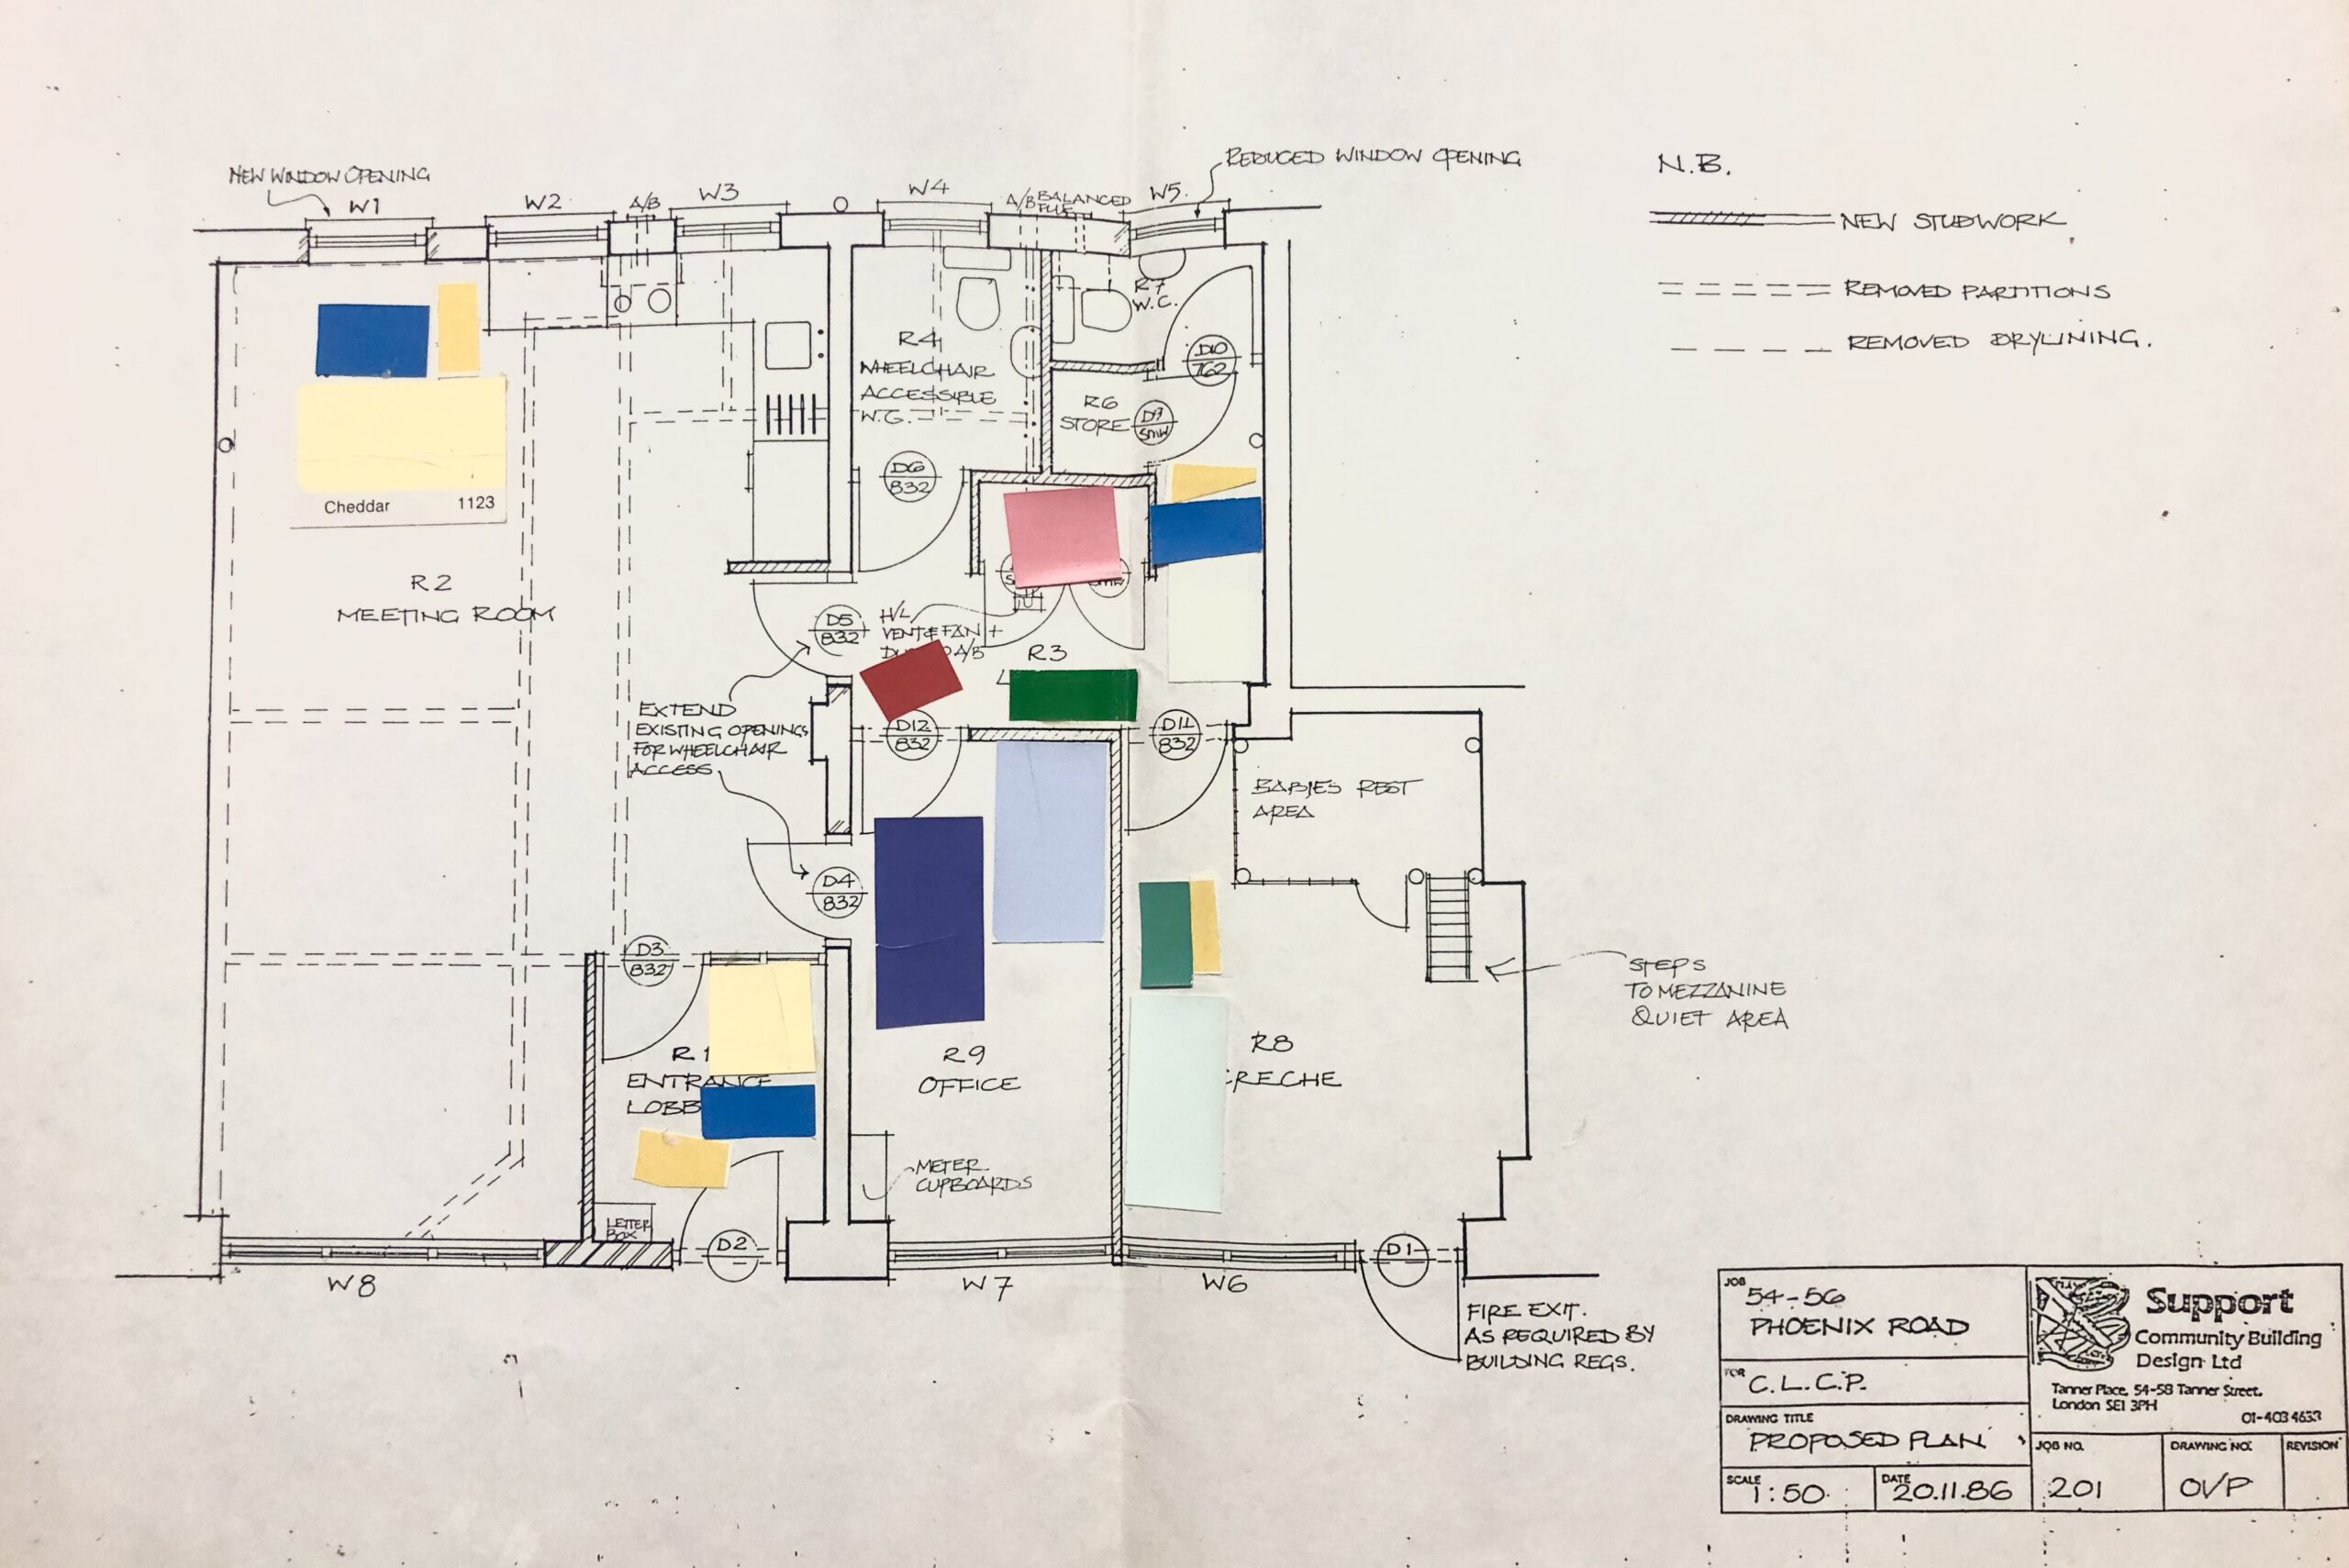 Architectural floor plan of CLC&BLG's new premises, with coloured squares stuck into different rooms indicating the colourplans of those rooms.